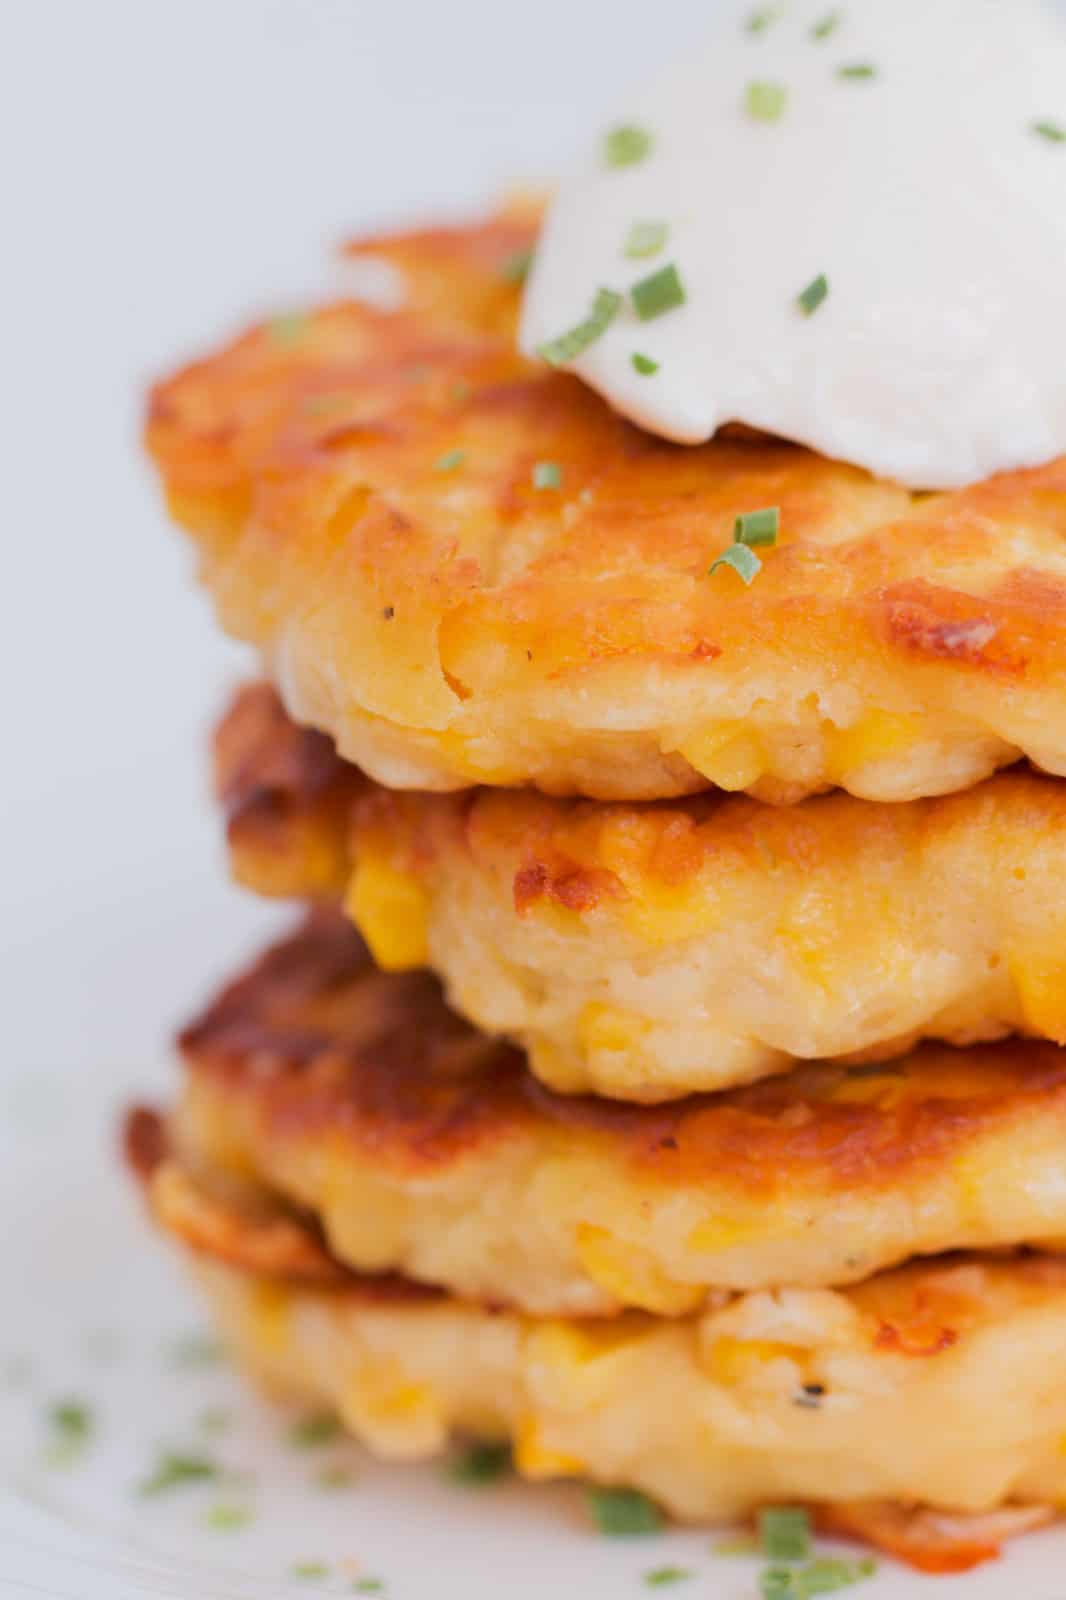 A close up shot of crispy corn fritters topped with sour cream and chives.